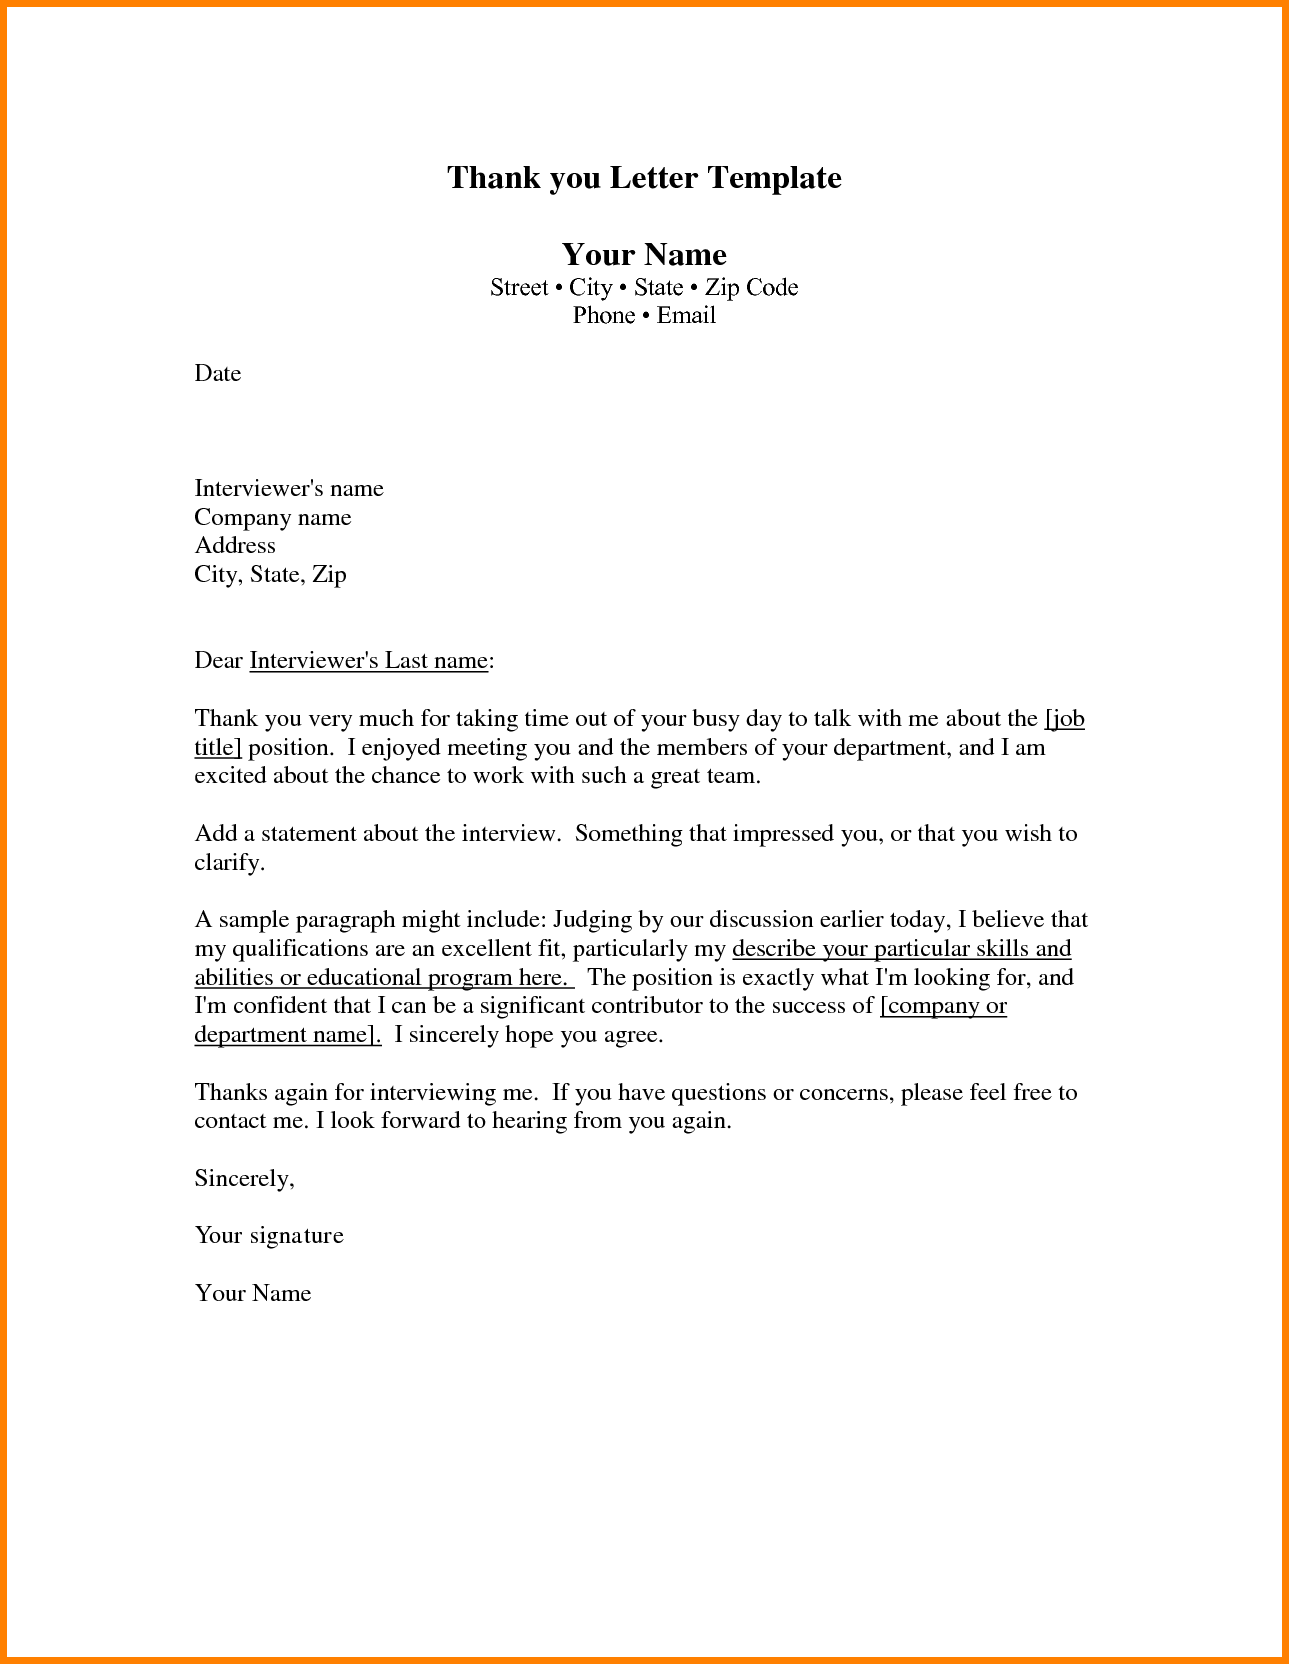 Professional Thank You Letter Template Scholarship Letters